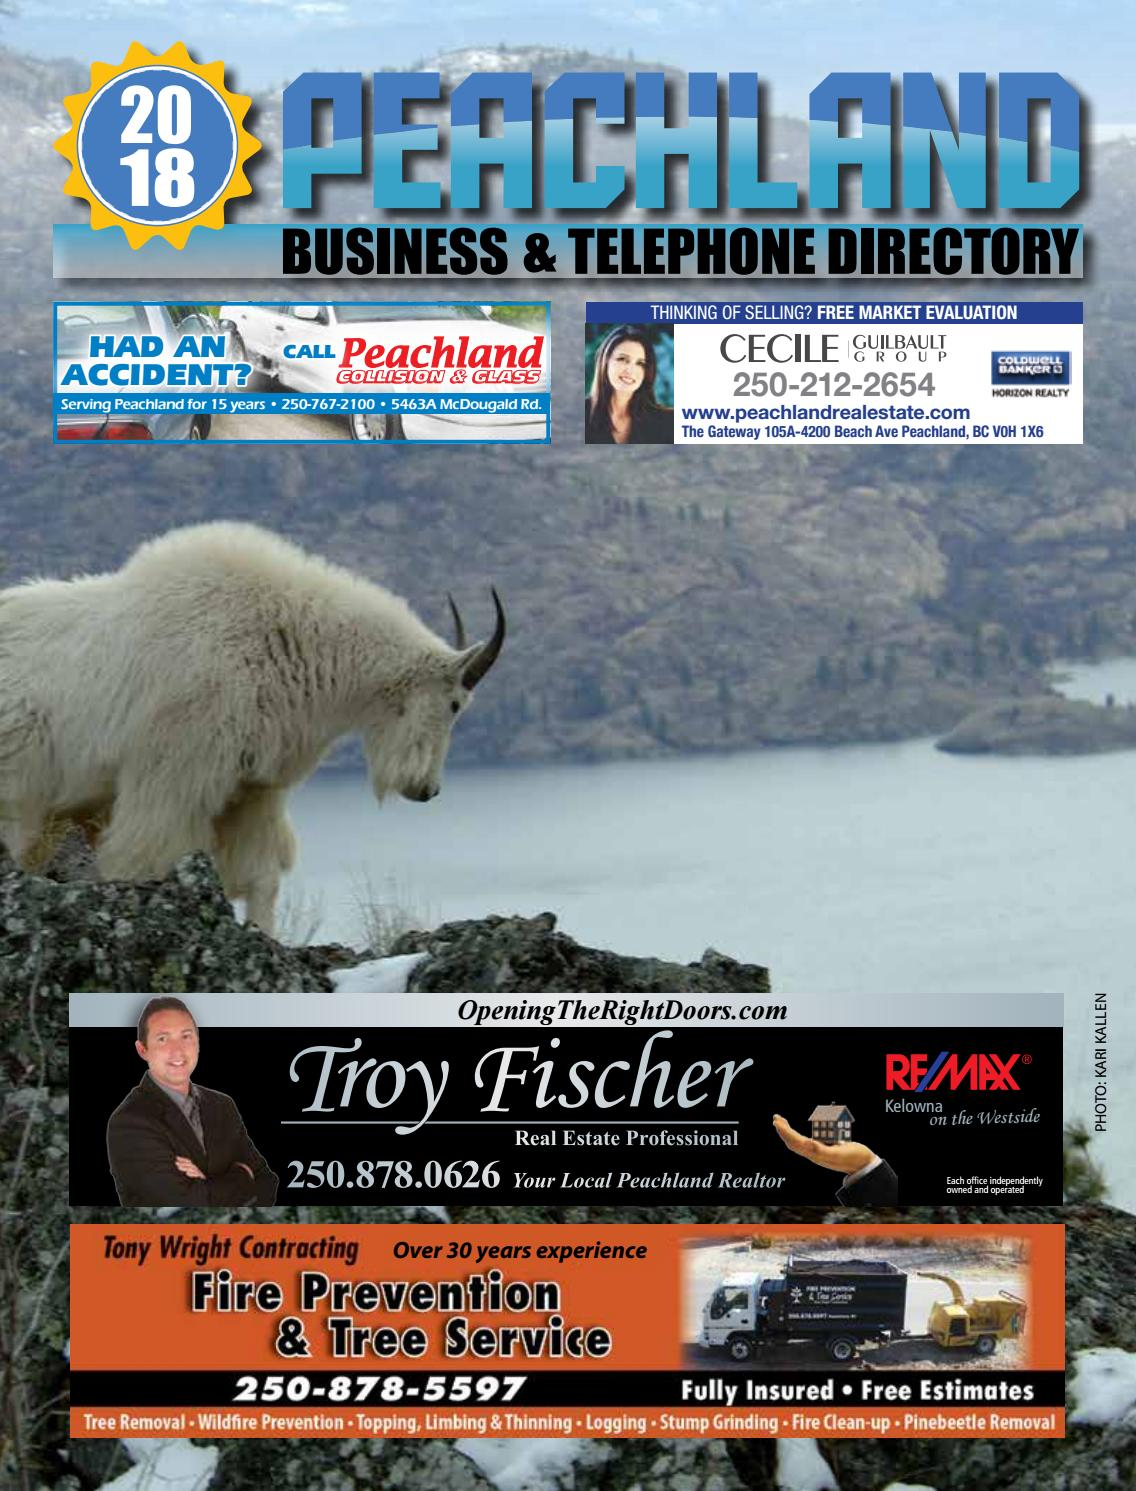 Peachland 2018 phone book lo res by Mike Rieger - issuu